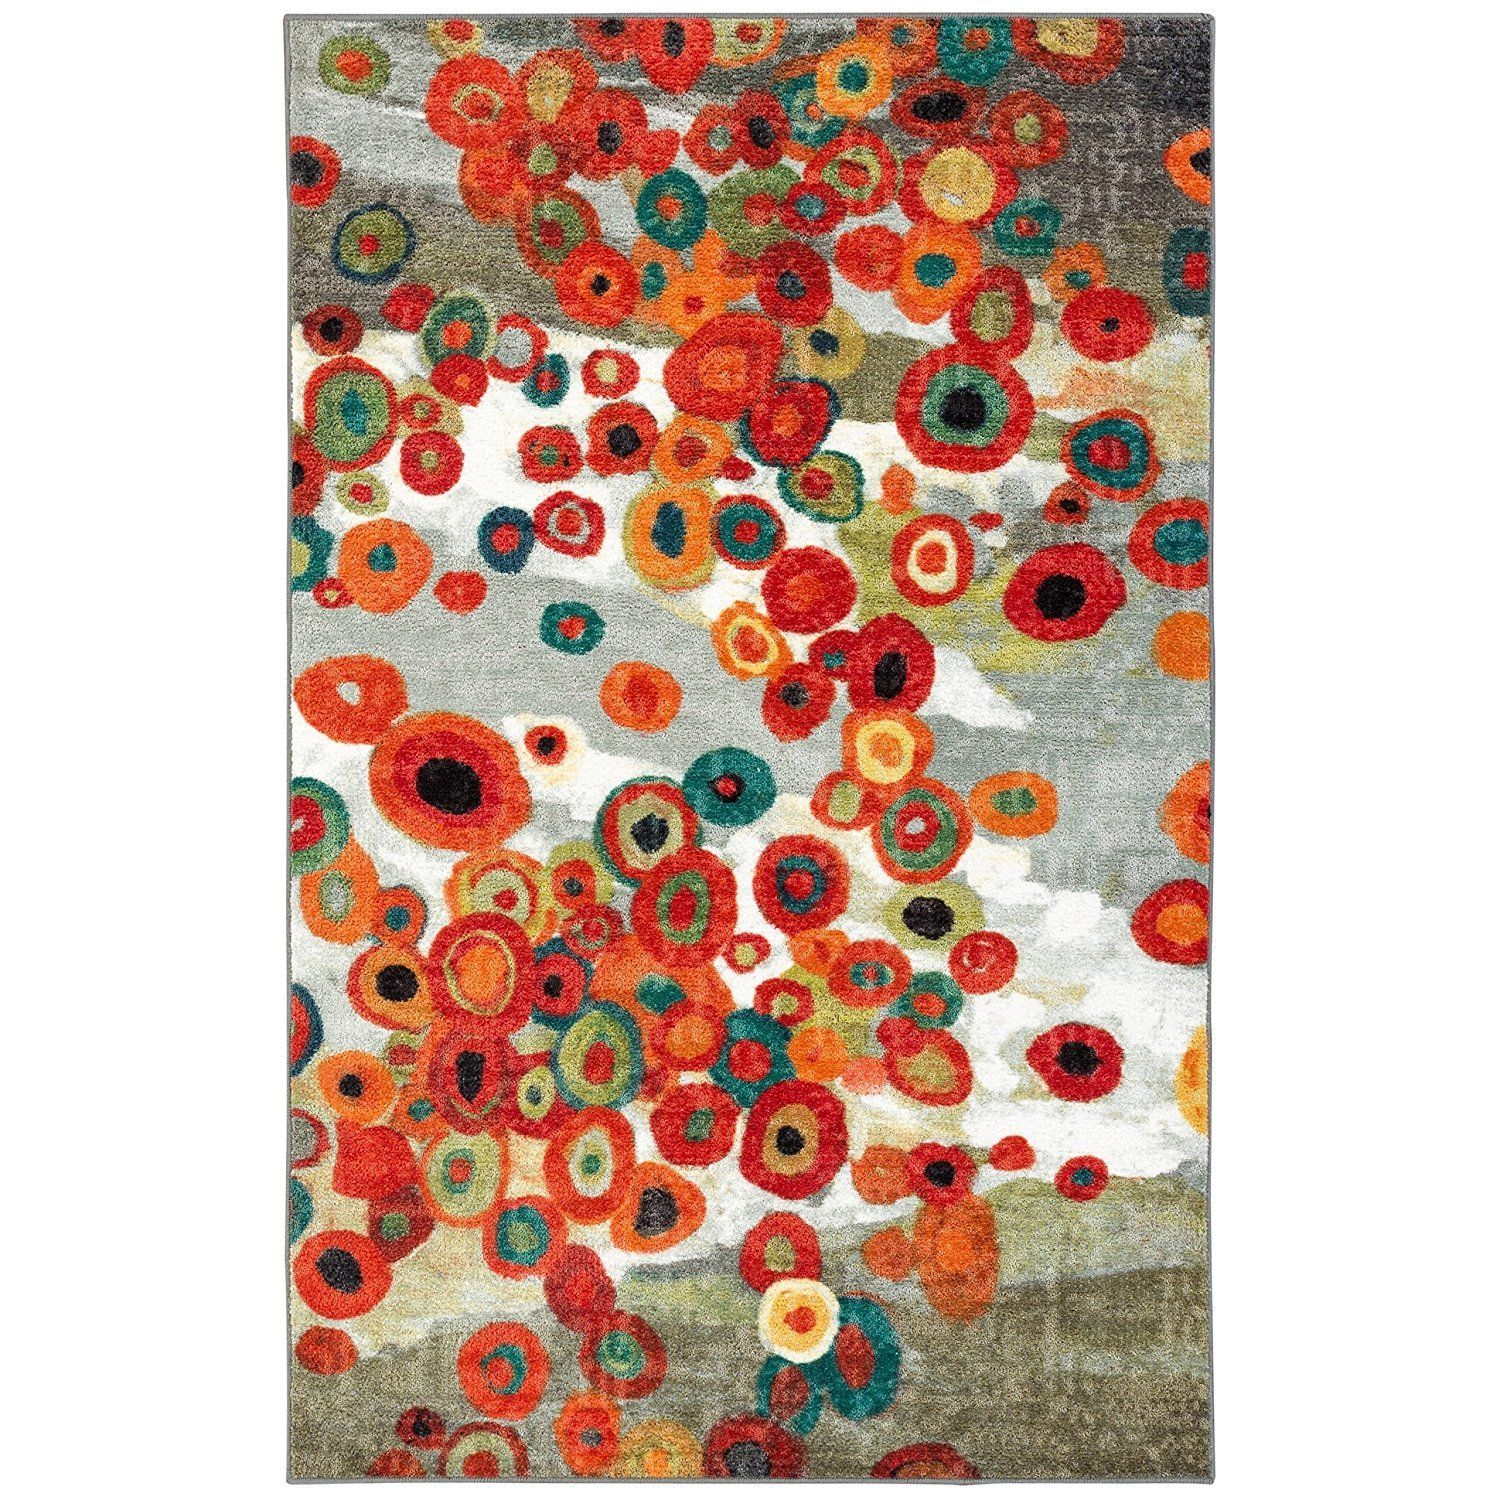 2'6 x 3'10 Floral Artistic Color Area Rug Sophisticated Intelligent Intellectual Painting Wall Fancy Contemporary Flower Warm Living Room Powerful